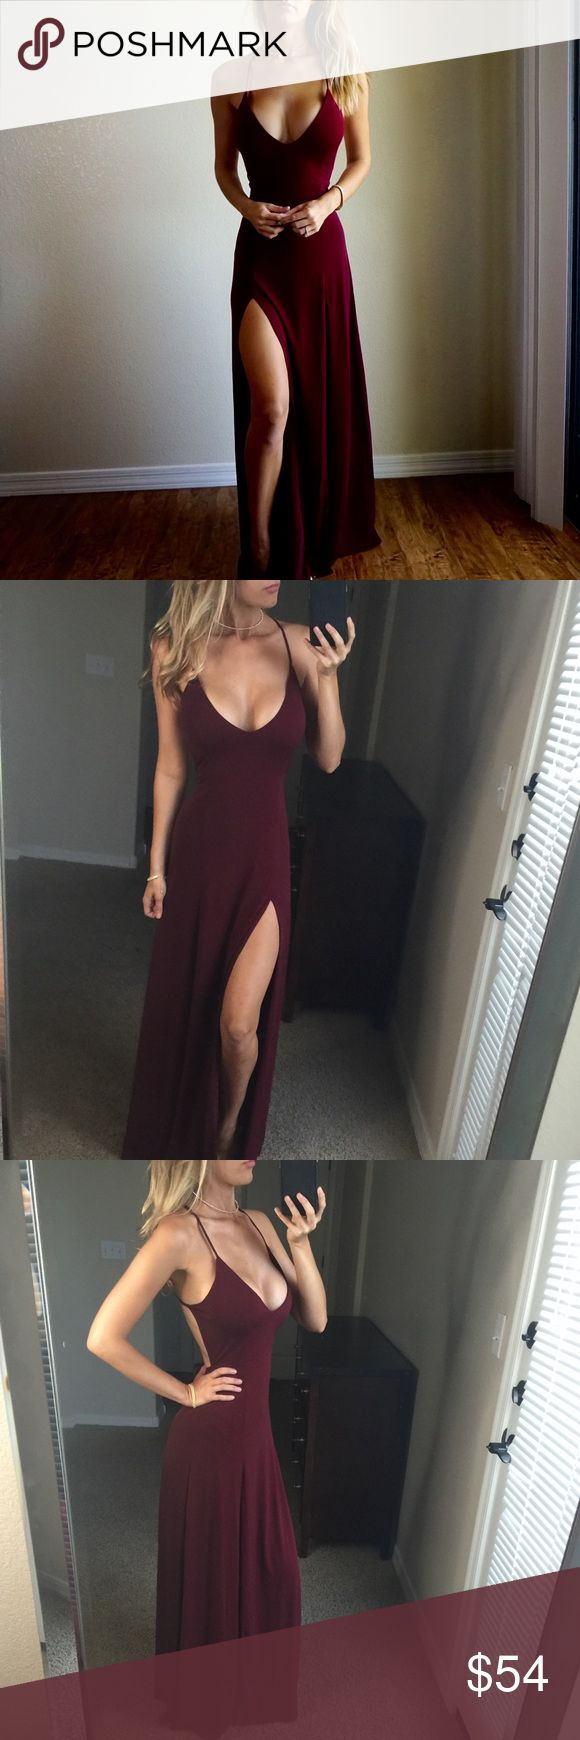 {Last One}-Love Me to the Maxi Dress- This maxi will make you feel unstoppable from the moment you step into it. Double high slits in the front to show off your legs. Open back with crossover straps. Low v neck cut. Gorgeous deep burgundy hue. High quality buttery soft fabric. •Fabric: Polyester & Spandex •Made in the U.S.❤️ •Medium measures 58 inches long from Shoulder to hem. •I am modeling a Medium, my measurements are: 34-24-35 Boutique Dresses Maxi